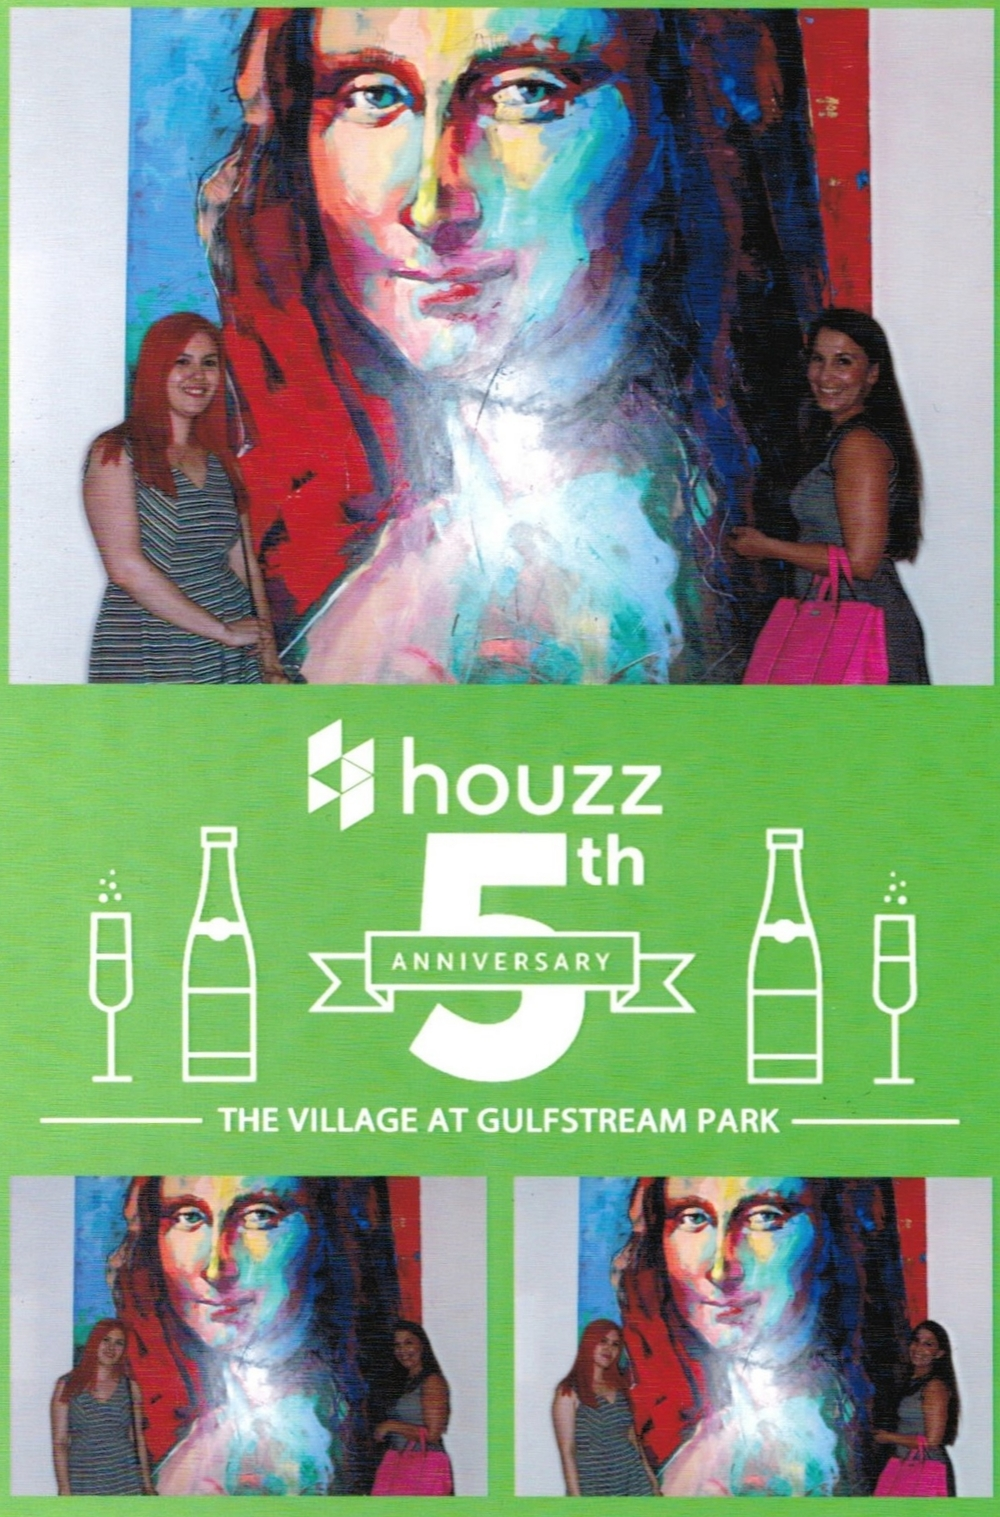 Houzz 5th Anniversary Event